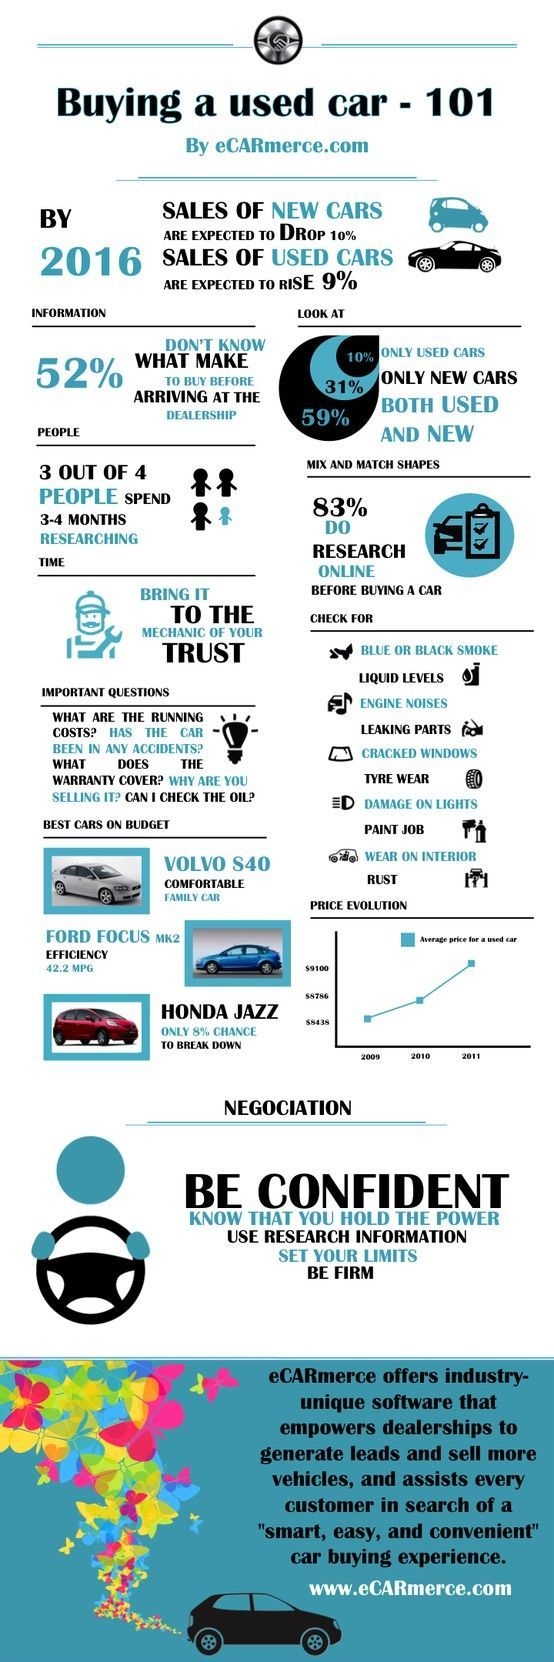 10 10 tips for car buying - Infographic How To Buy A Used Car Tips On How To Get A Good